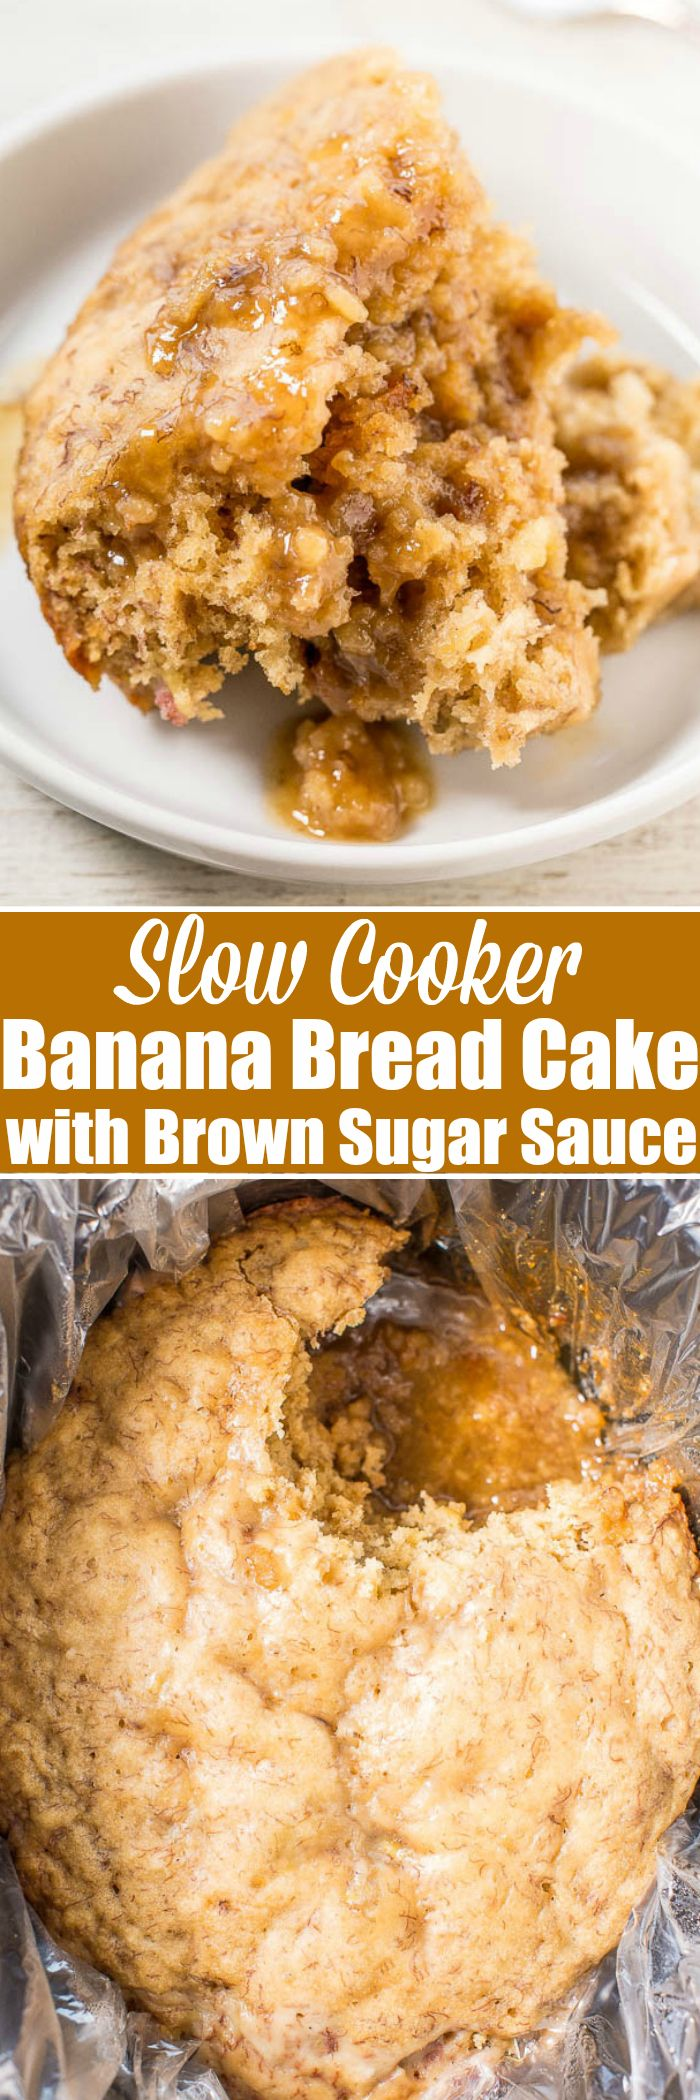 Slow Cooker Banana Bread Cake with Brown Sugar Sauce - Soft, tender banana bread with a caramely, brown sugar sauce that develops while the bread cooks!! If you've never made dessert in your slow cooker, start with this easy recipe!!